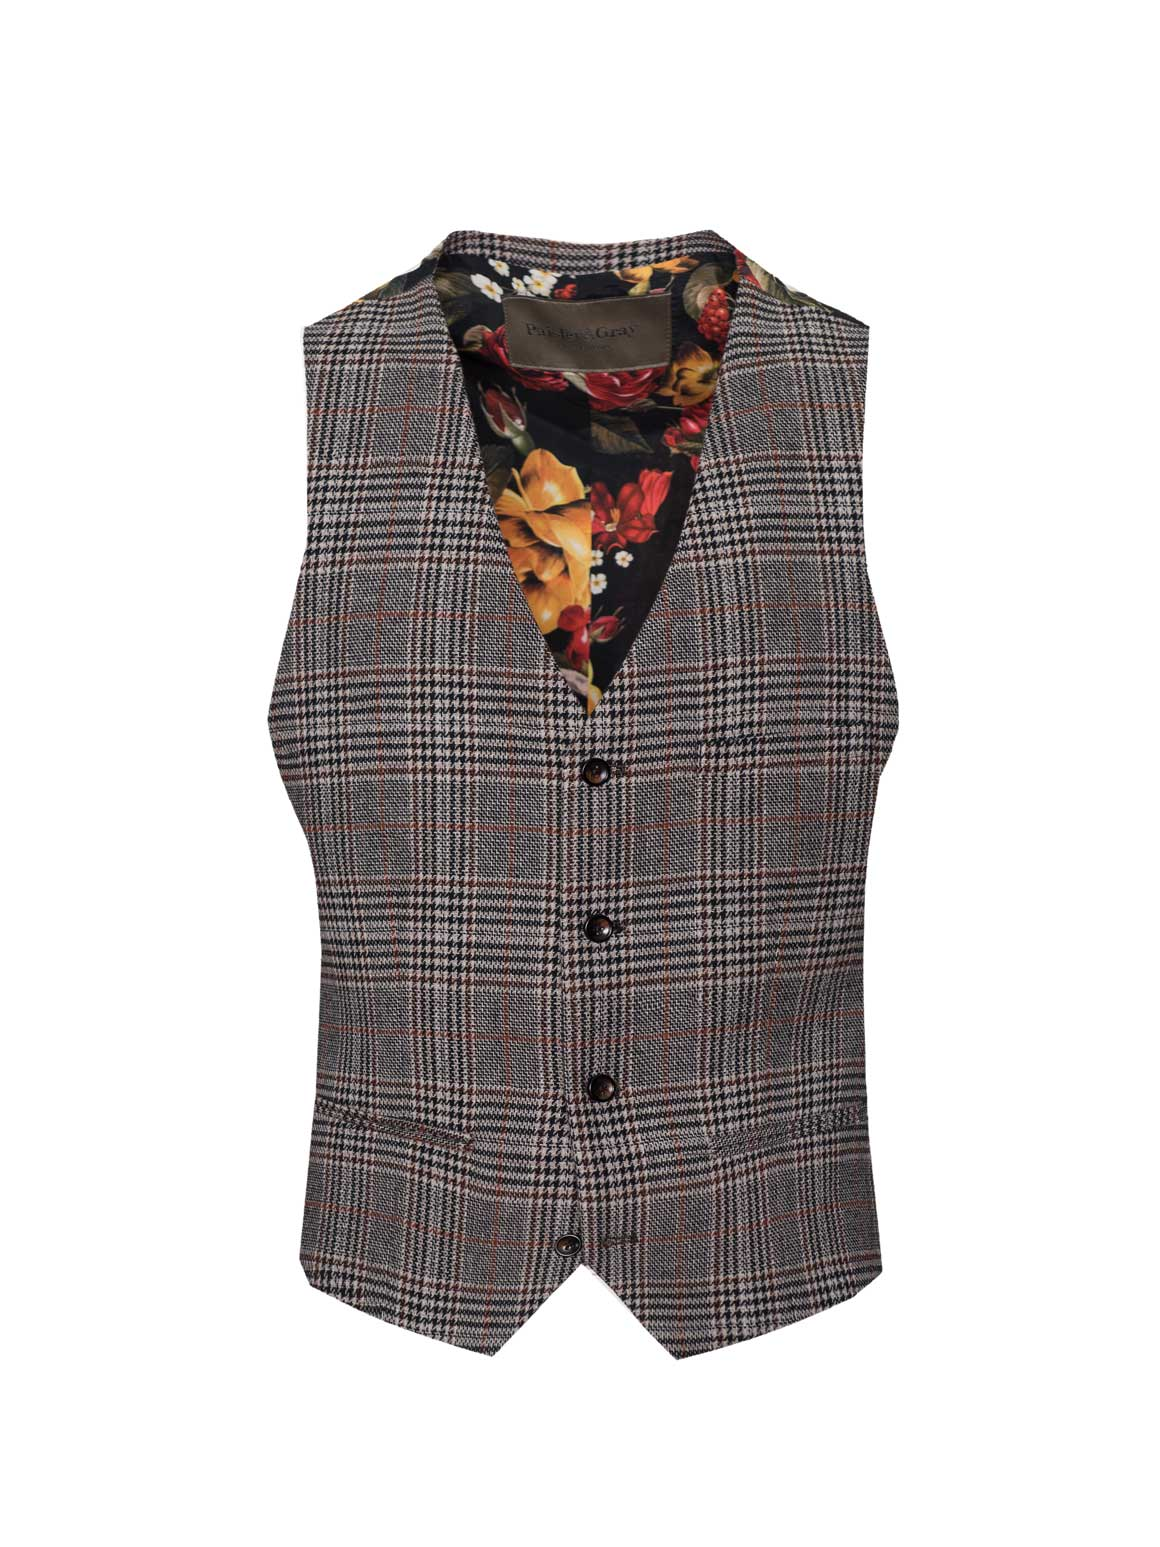 Eaton Vest - Black Coffee Plaid